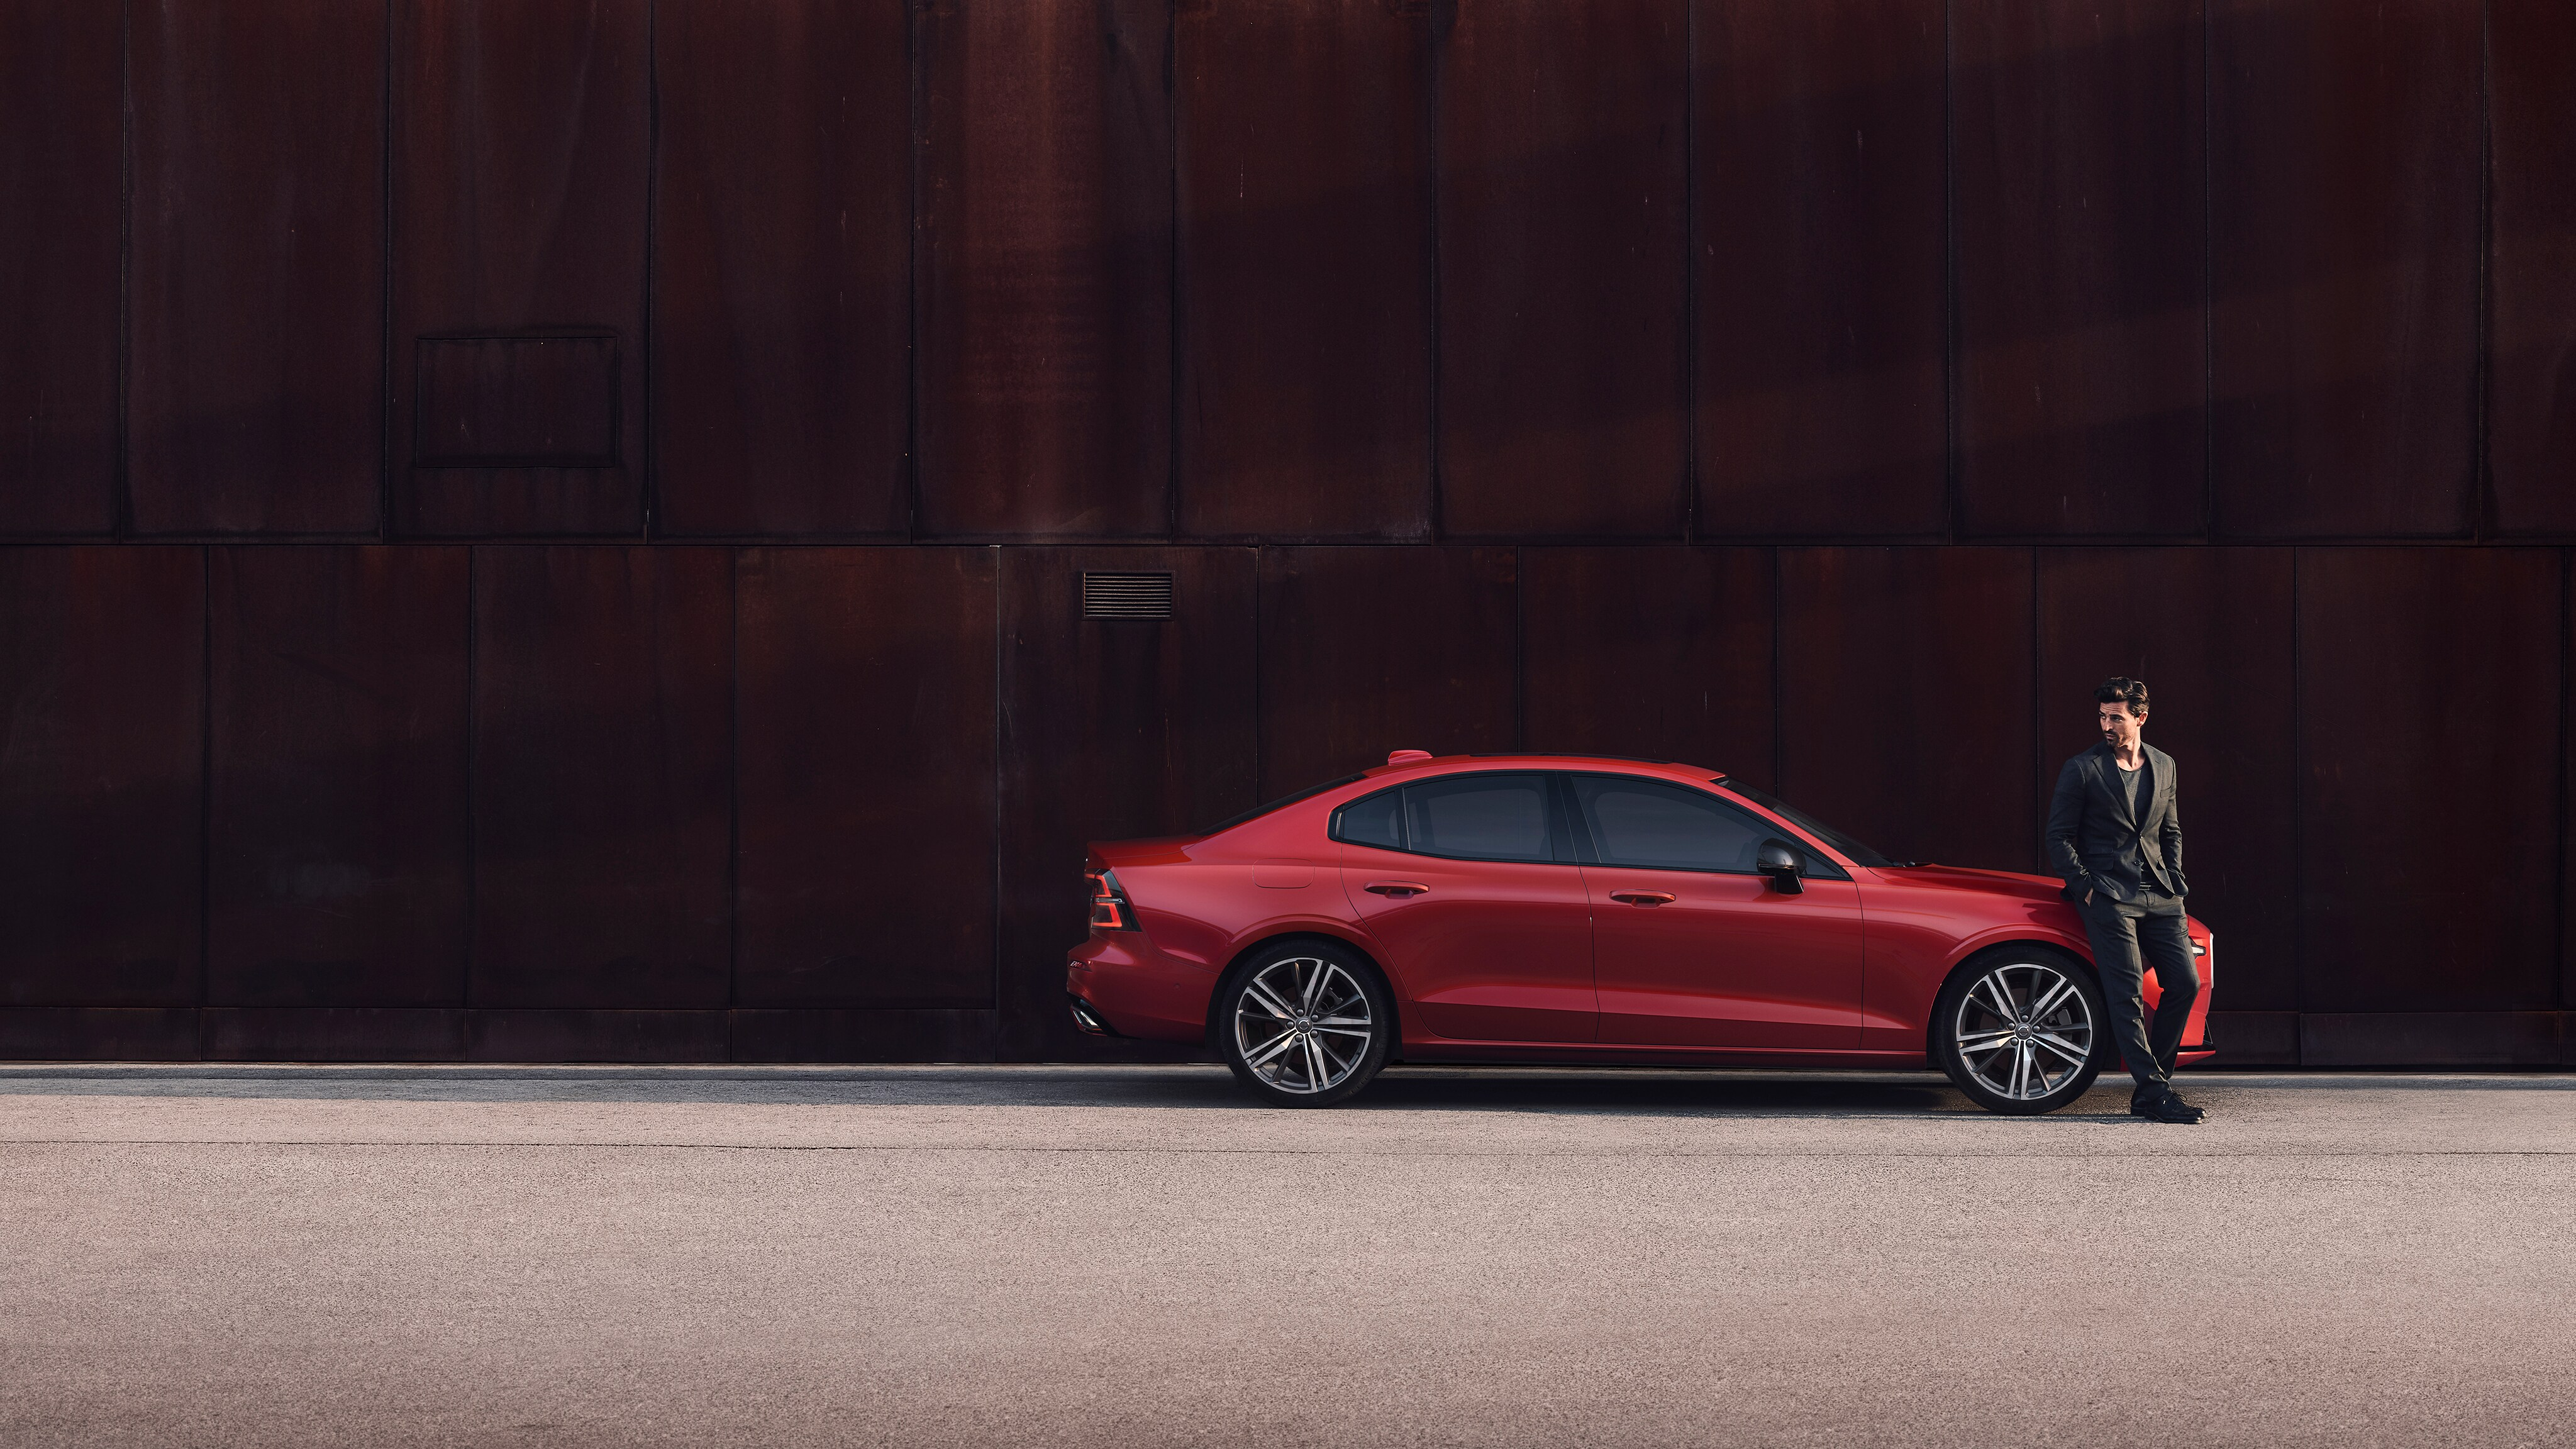 Inspired Driving The New Volvo S60